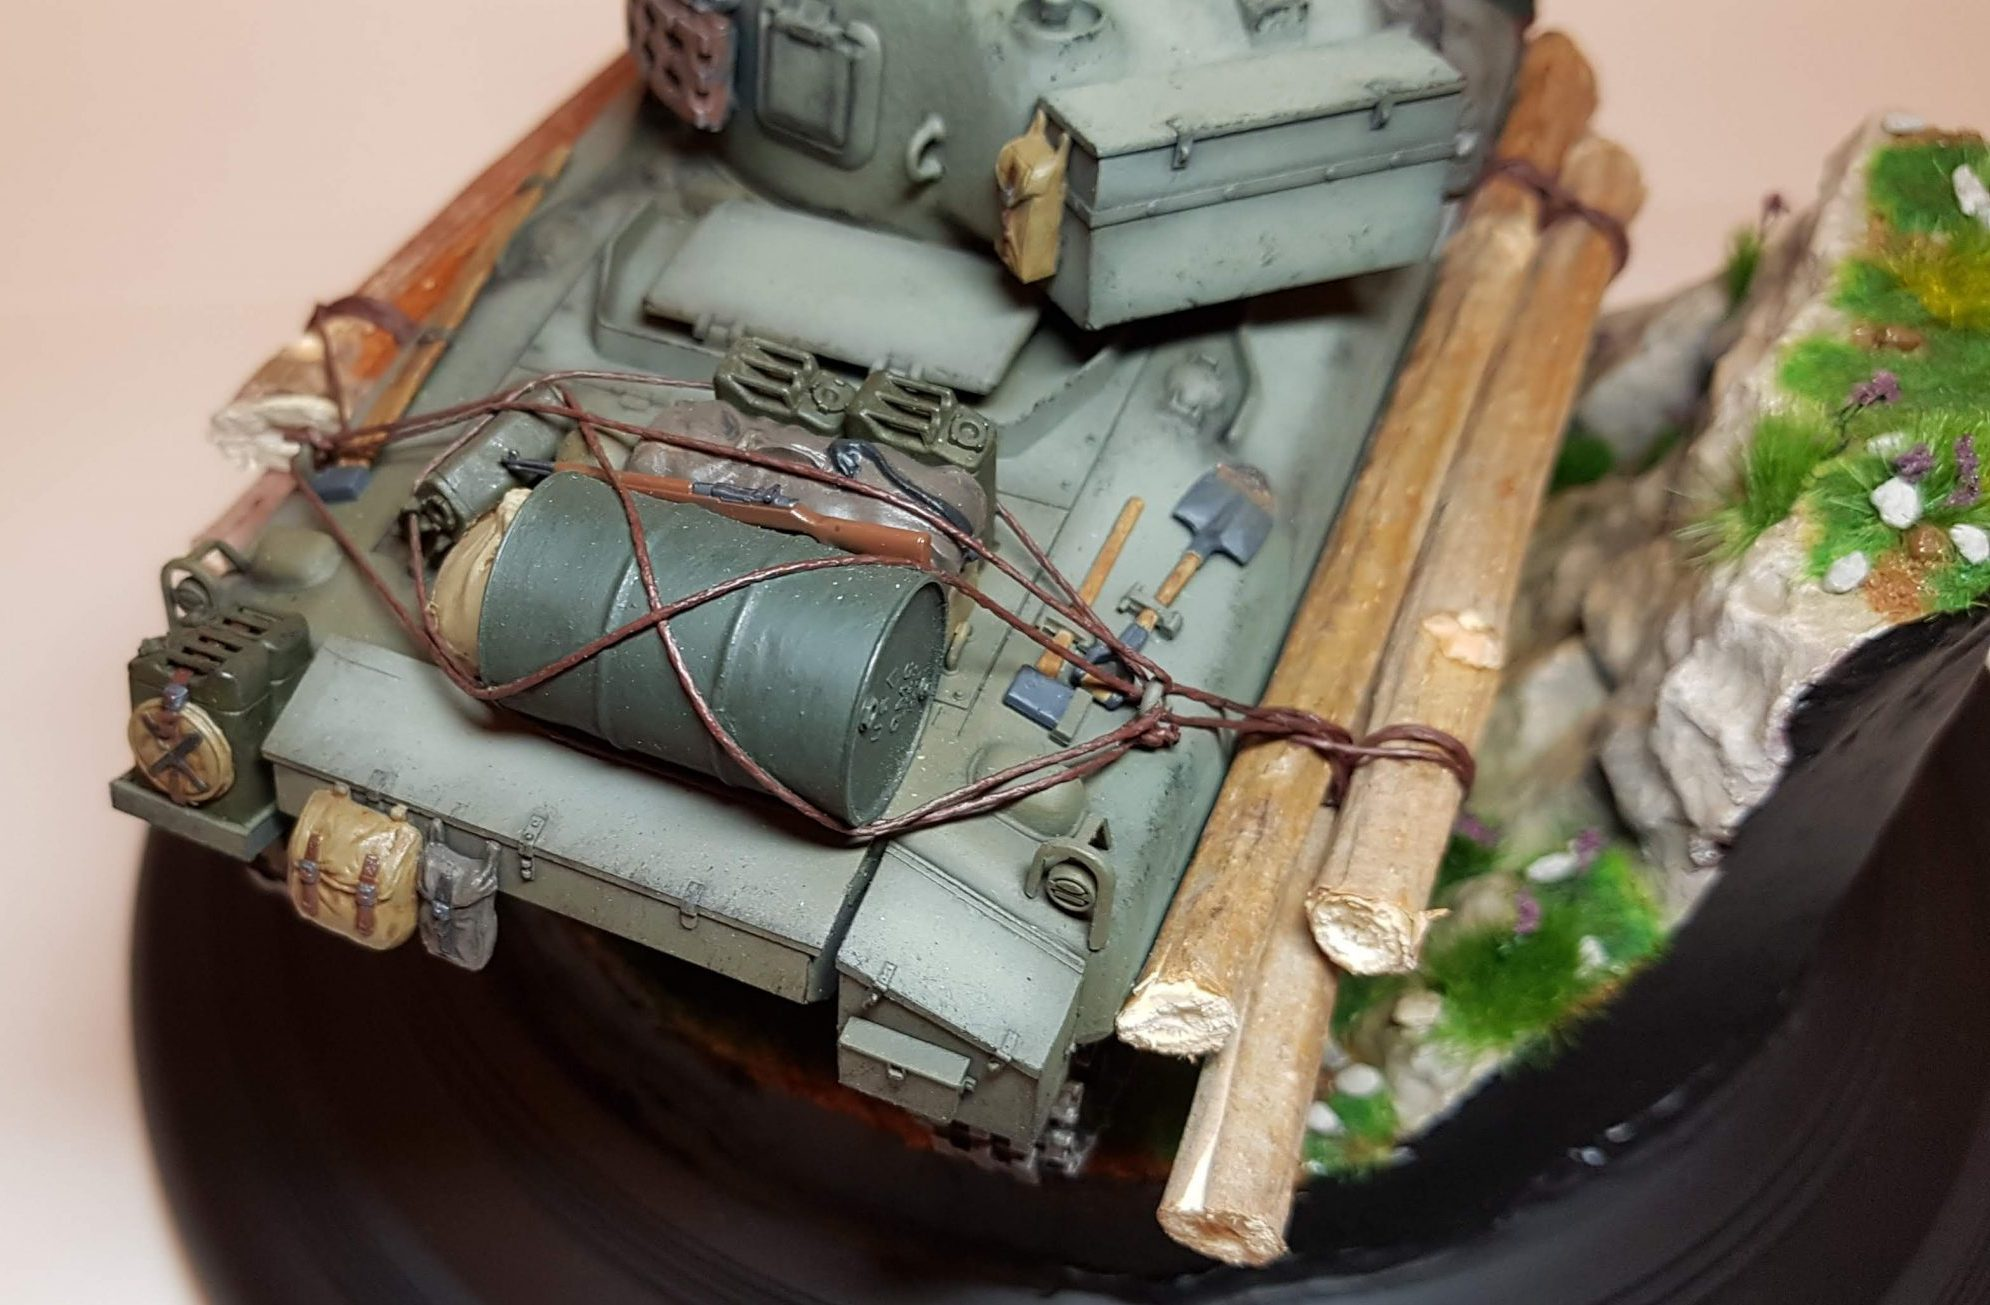 Kit-bashed - M4 Sherman (WW2) - Storage Closeup - 1/35 Scale - Built By Wright Built - Tamiya, Italeri, Formations, Others, Sculpted